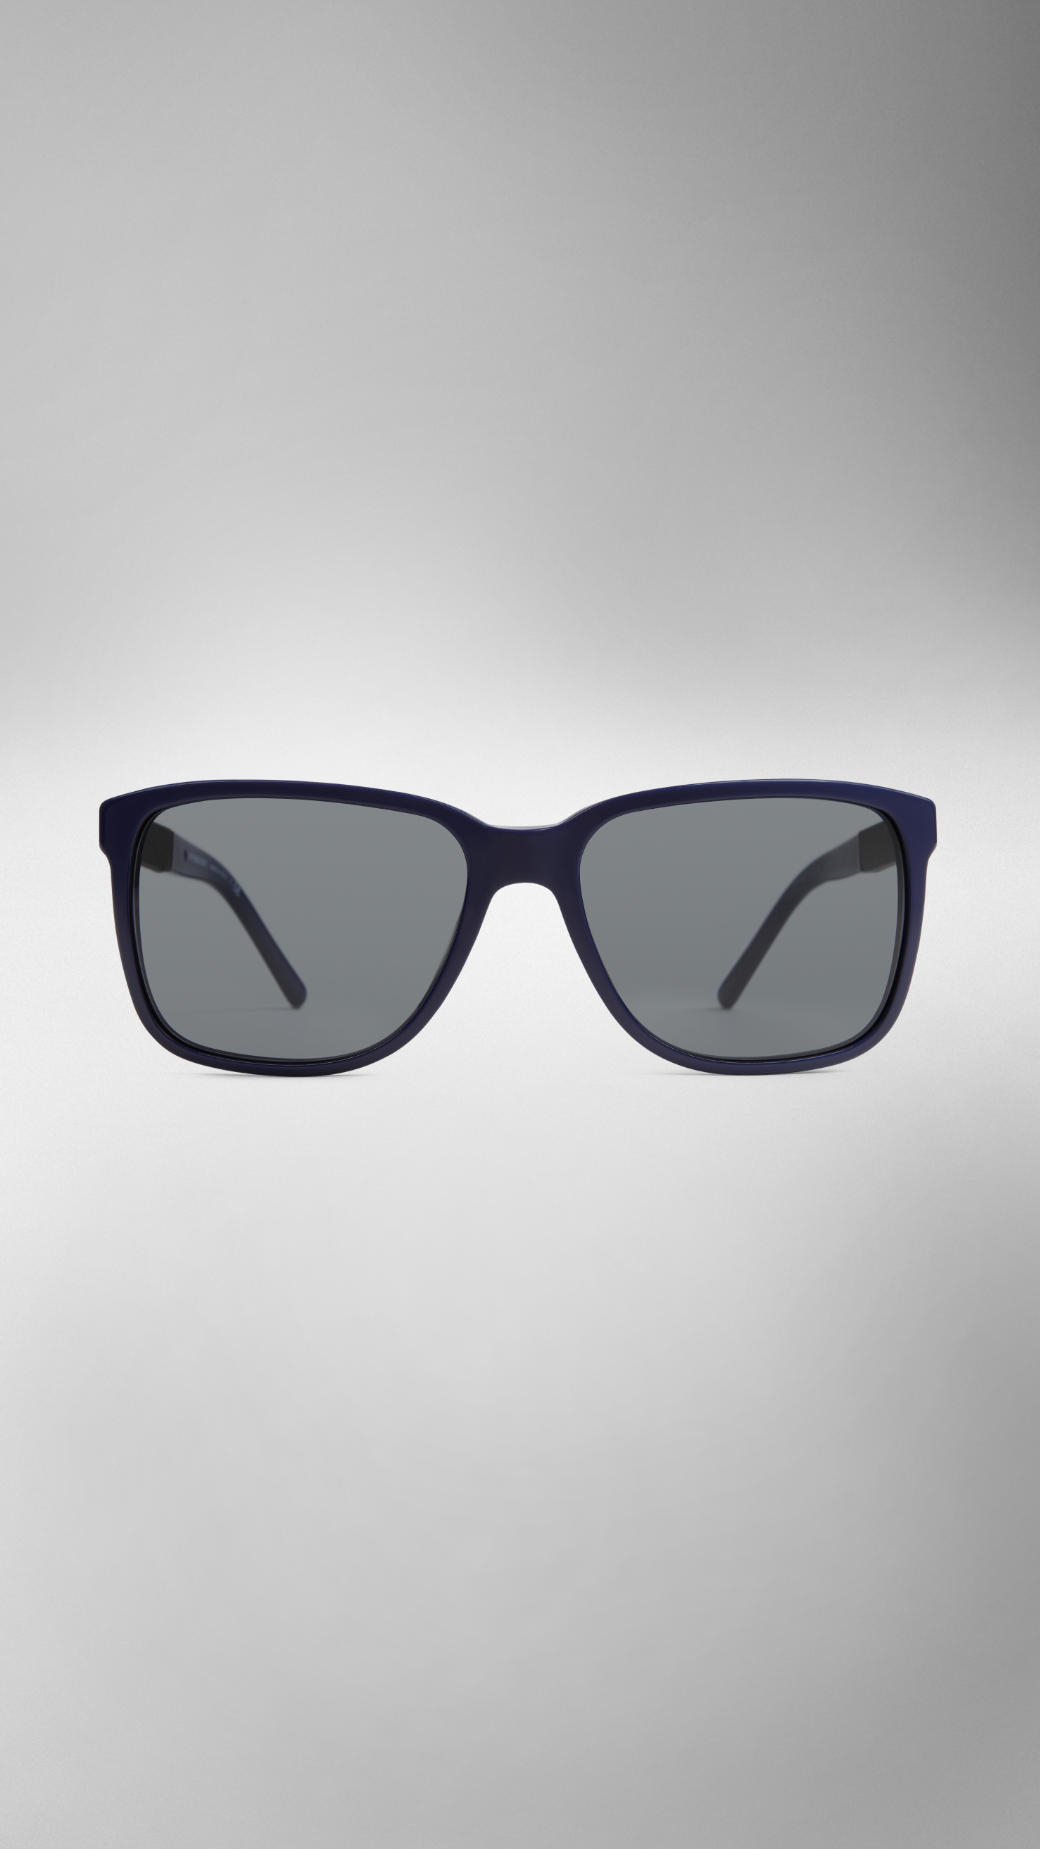 6960dd0bea77 Lyst - Burberry Square Frame Check Detail Sunglasses in Blue for Men